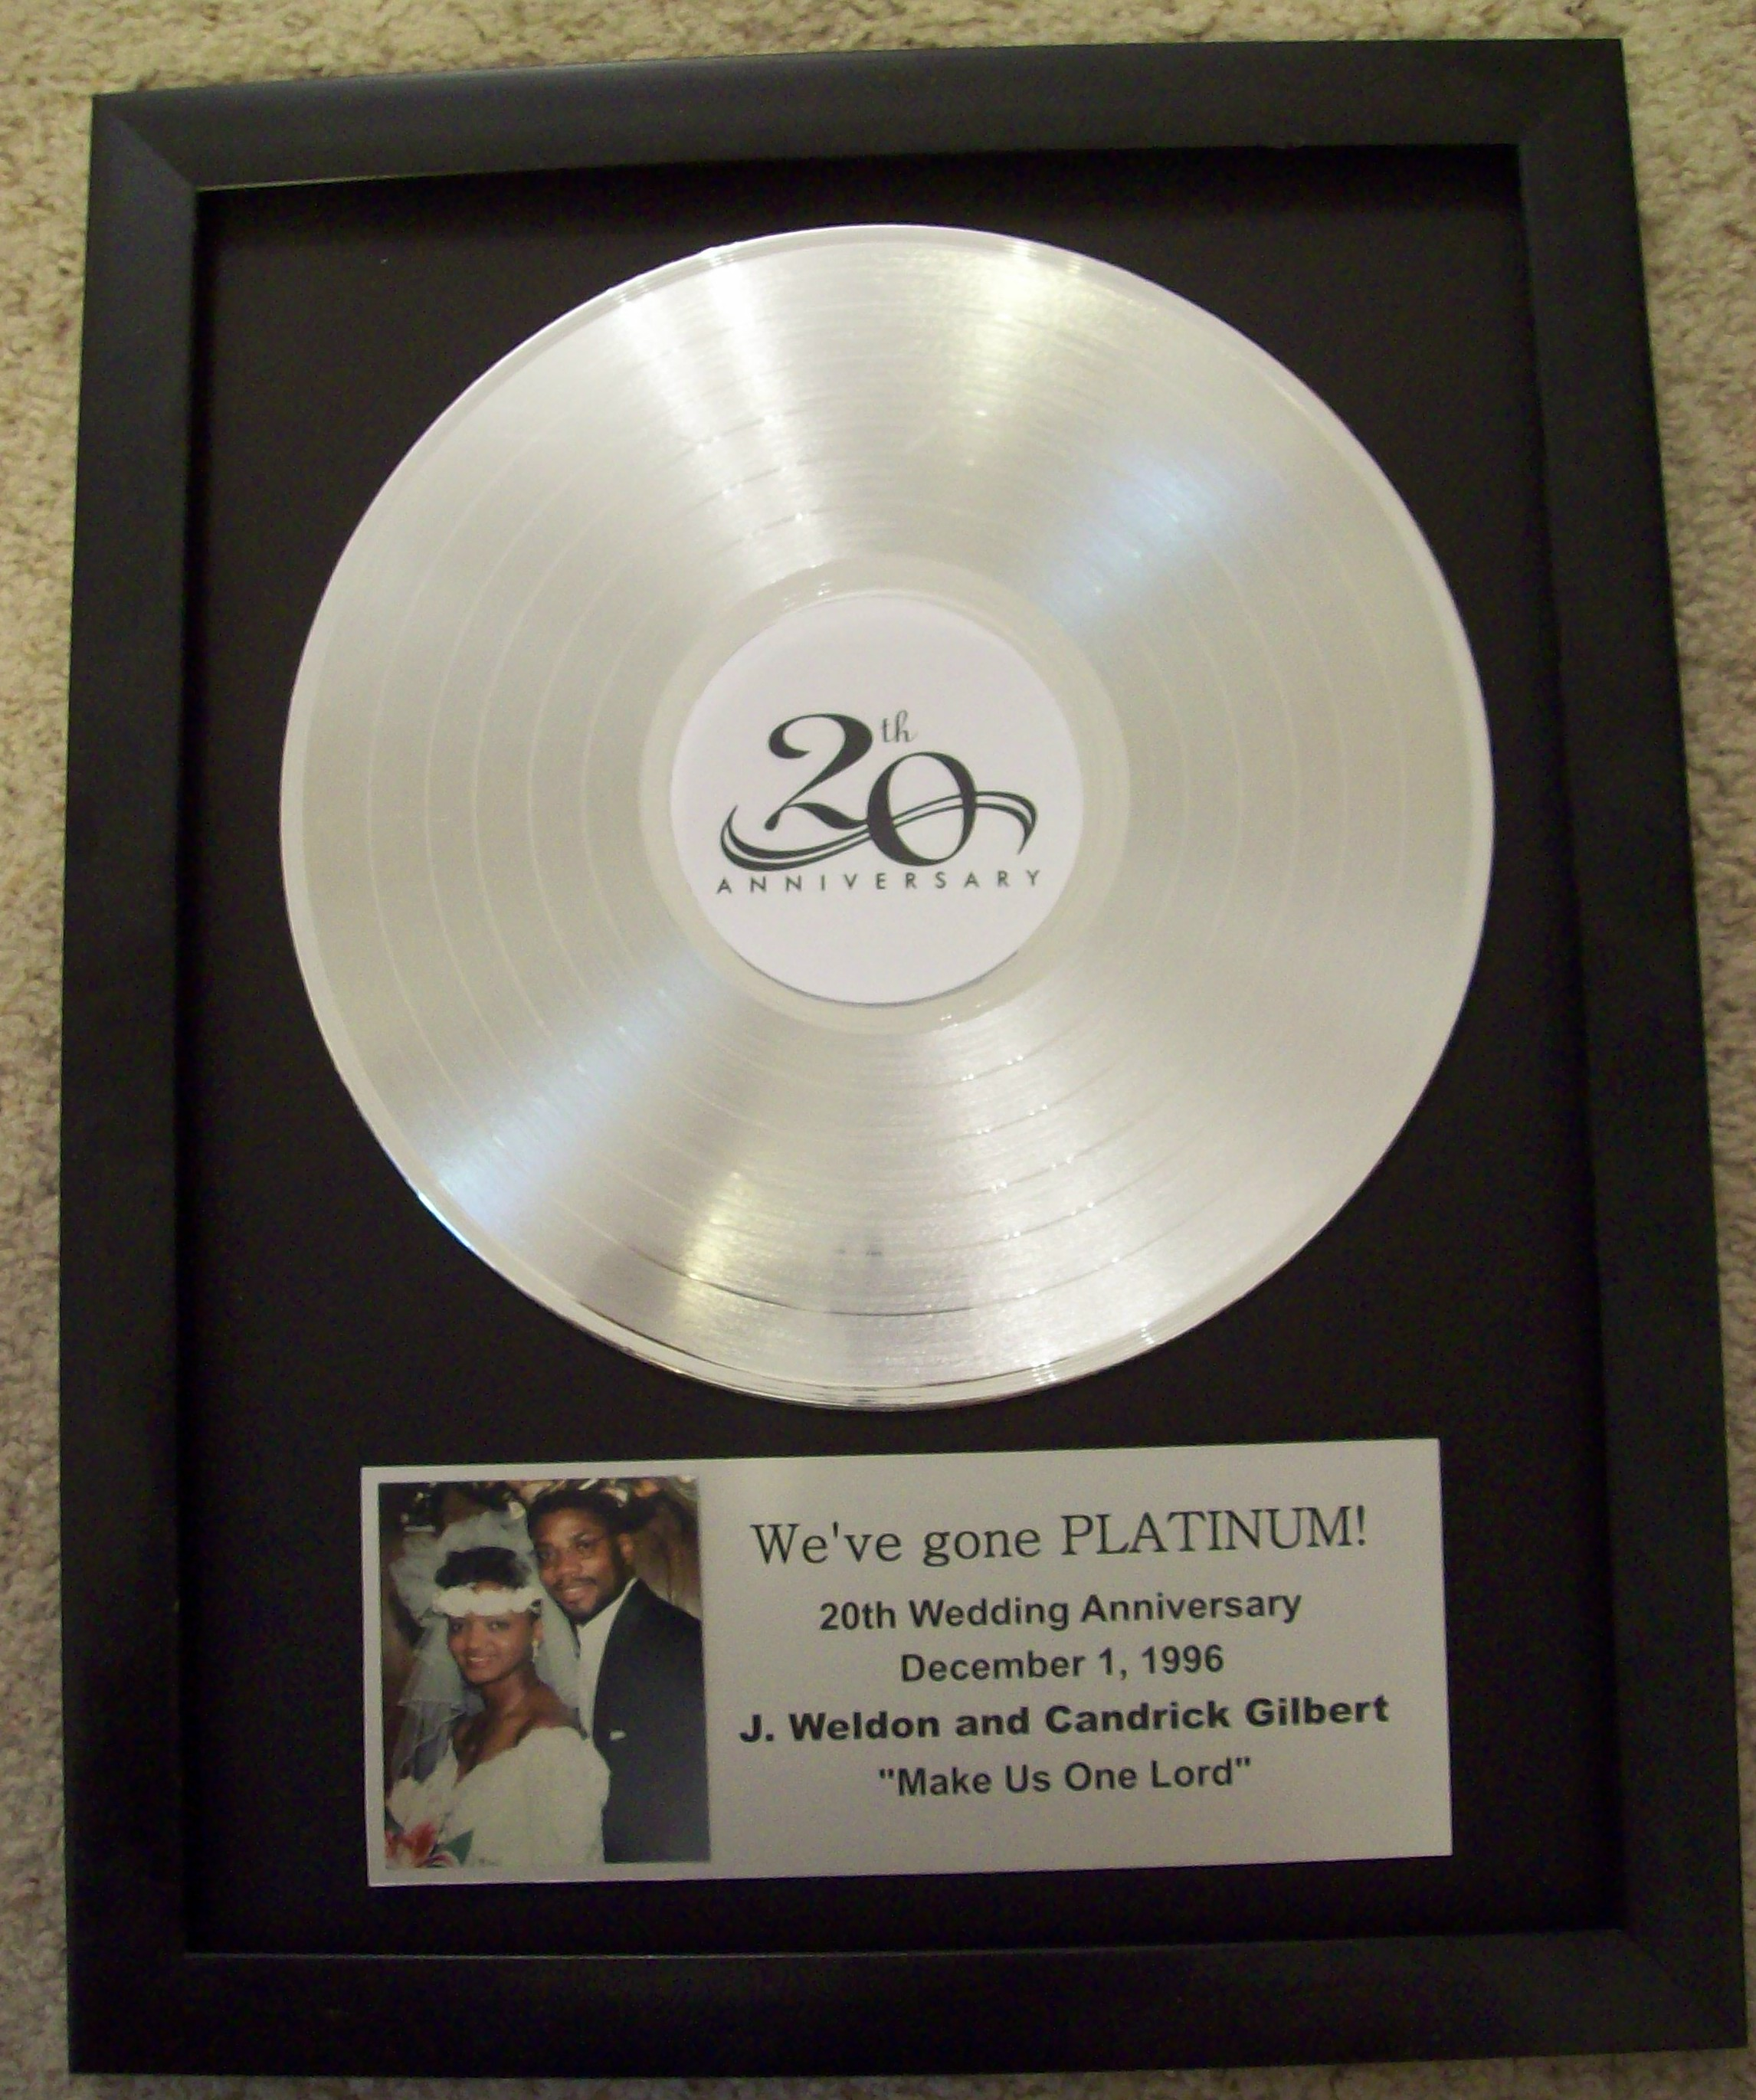 Image for Custom Platinum LP Record Award/Trophy